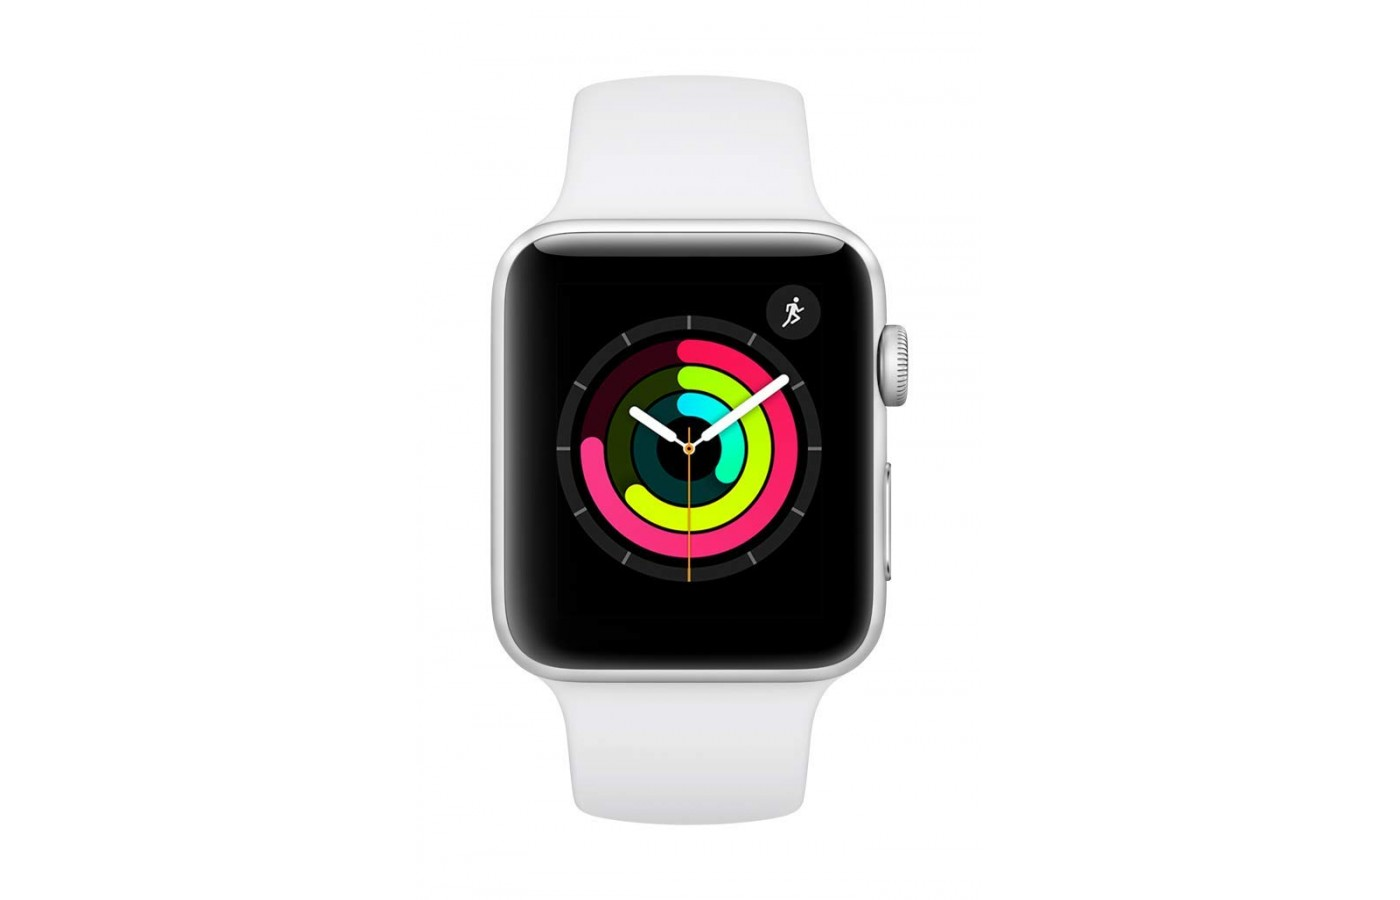 It has all the basics of a fitness tracker, all of the basics of a smart watch, plus an ability to answer phone calls with the speaker audio output and Voice Assist input.